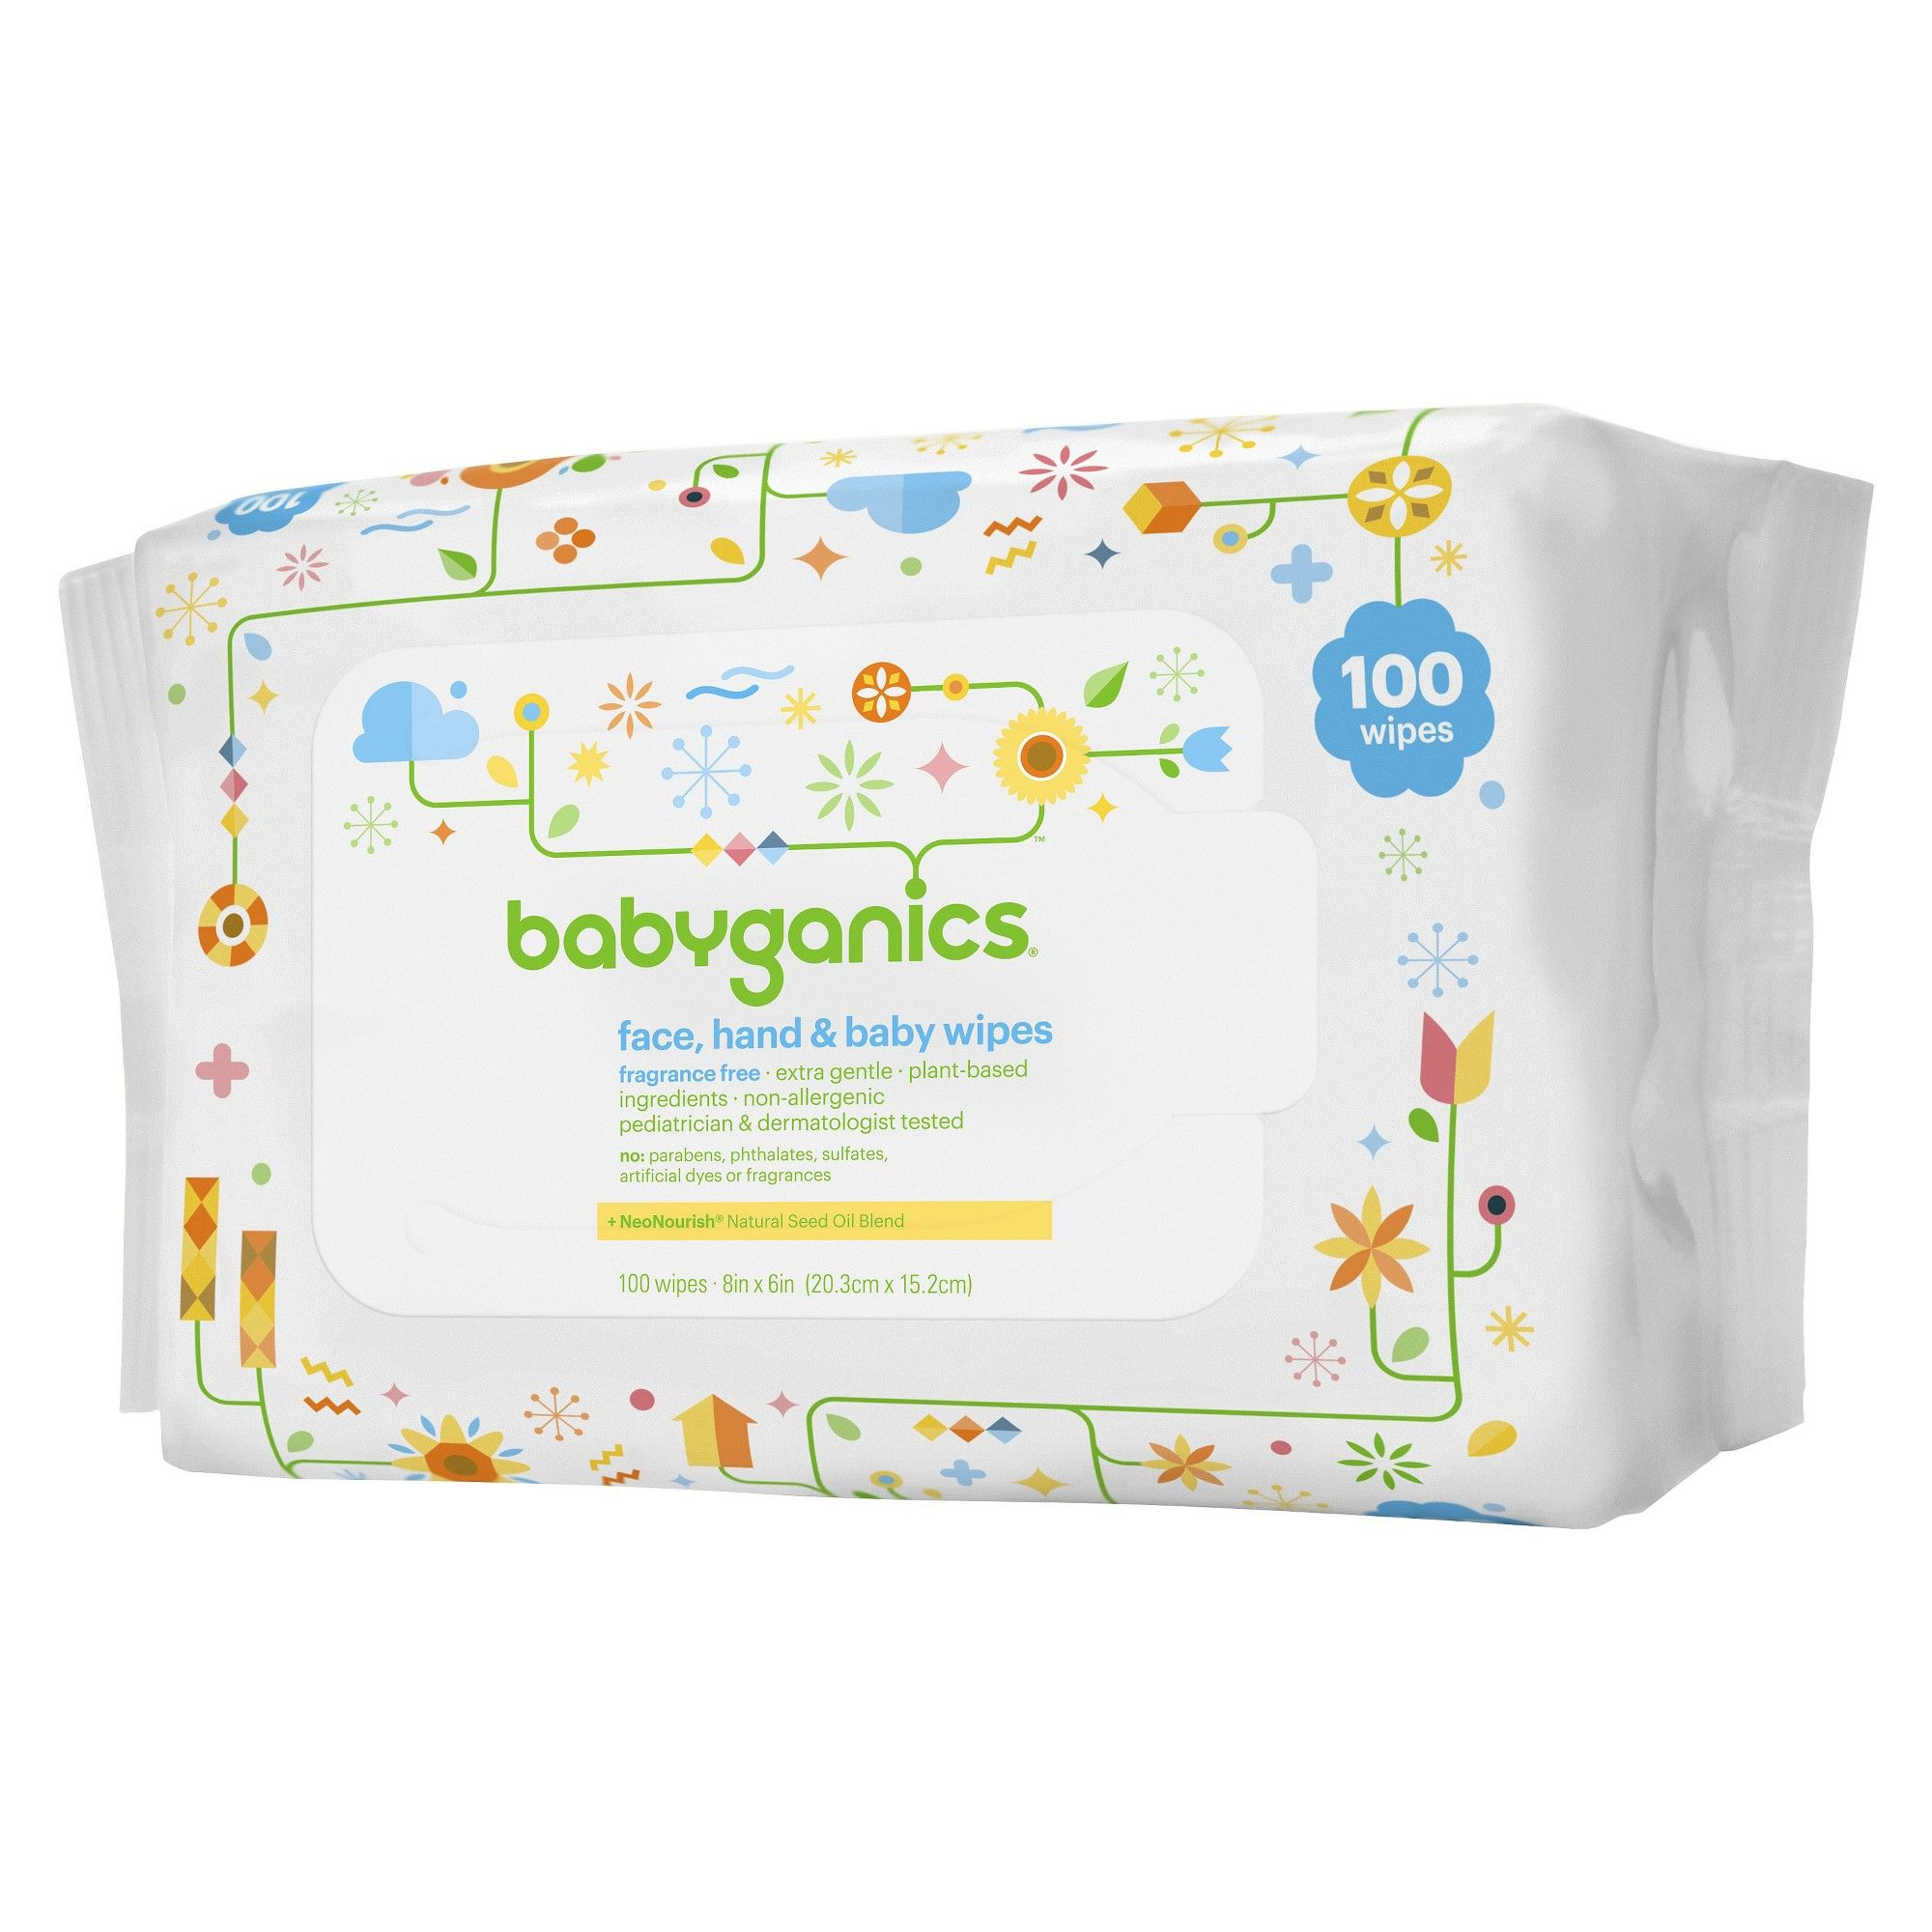 Best Wipes Ever Babyganics Wipes Babyganics Baby Wipes Recipe